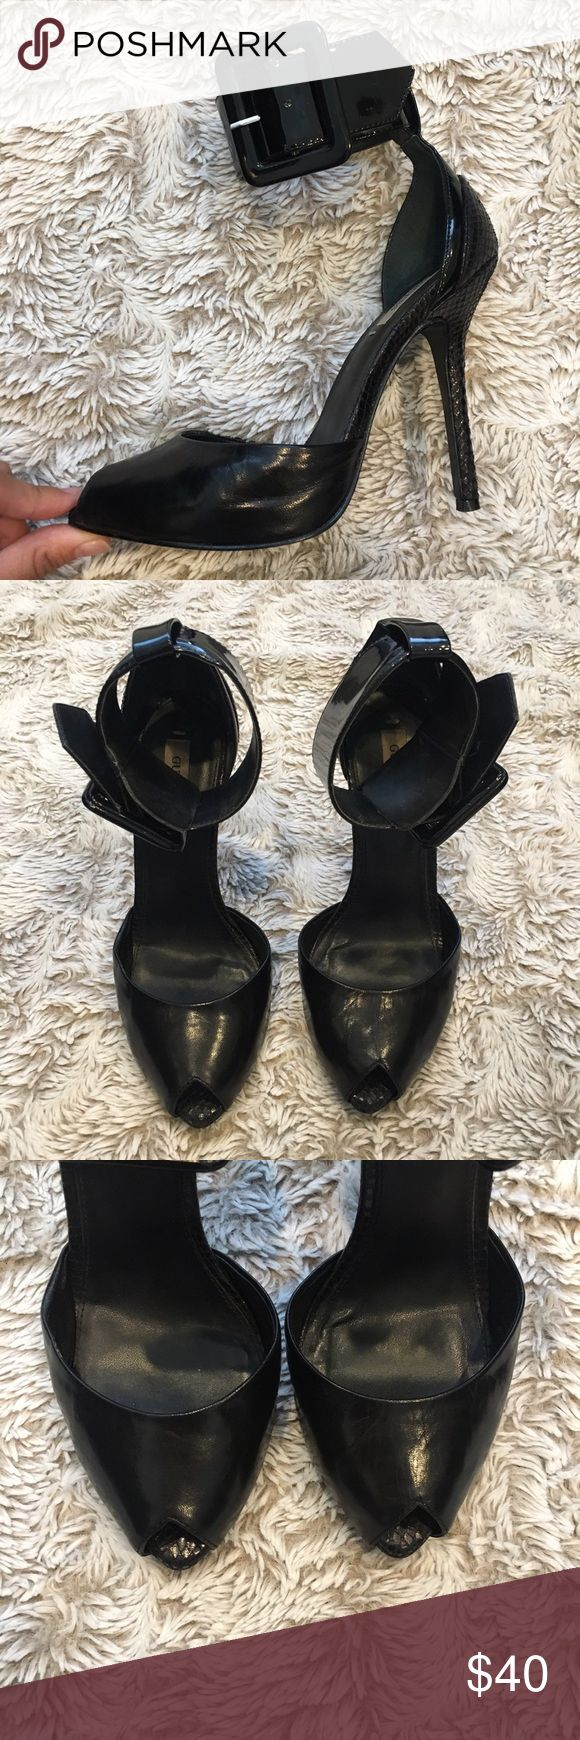 Black peep toe heels Black peep toe heels with thick belt ankle strap. Used a couple times as seen on bottom of the soles Guess Shoes Heels